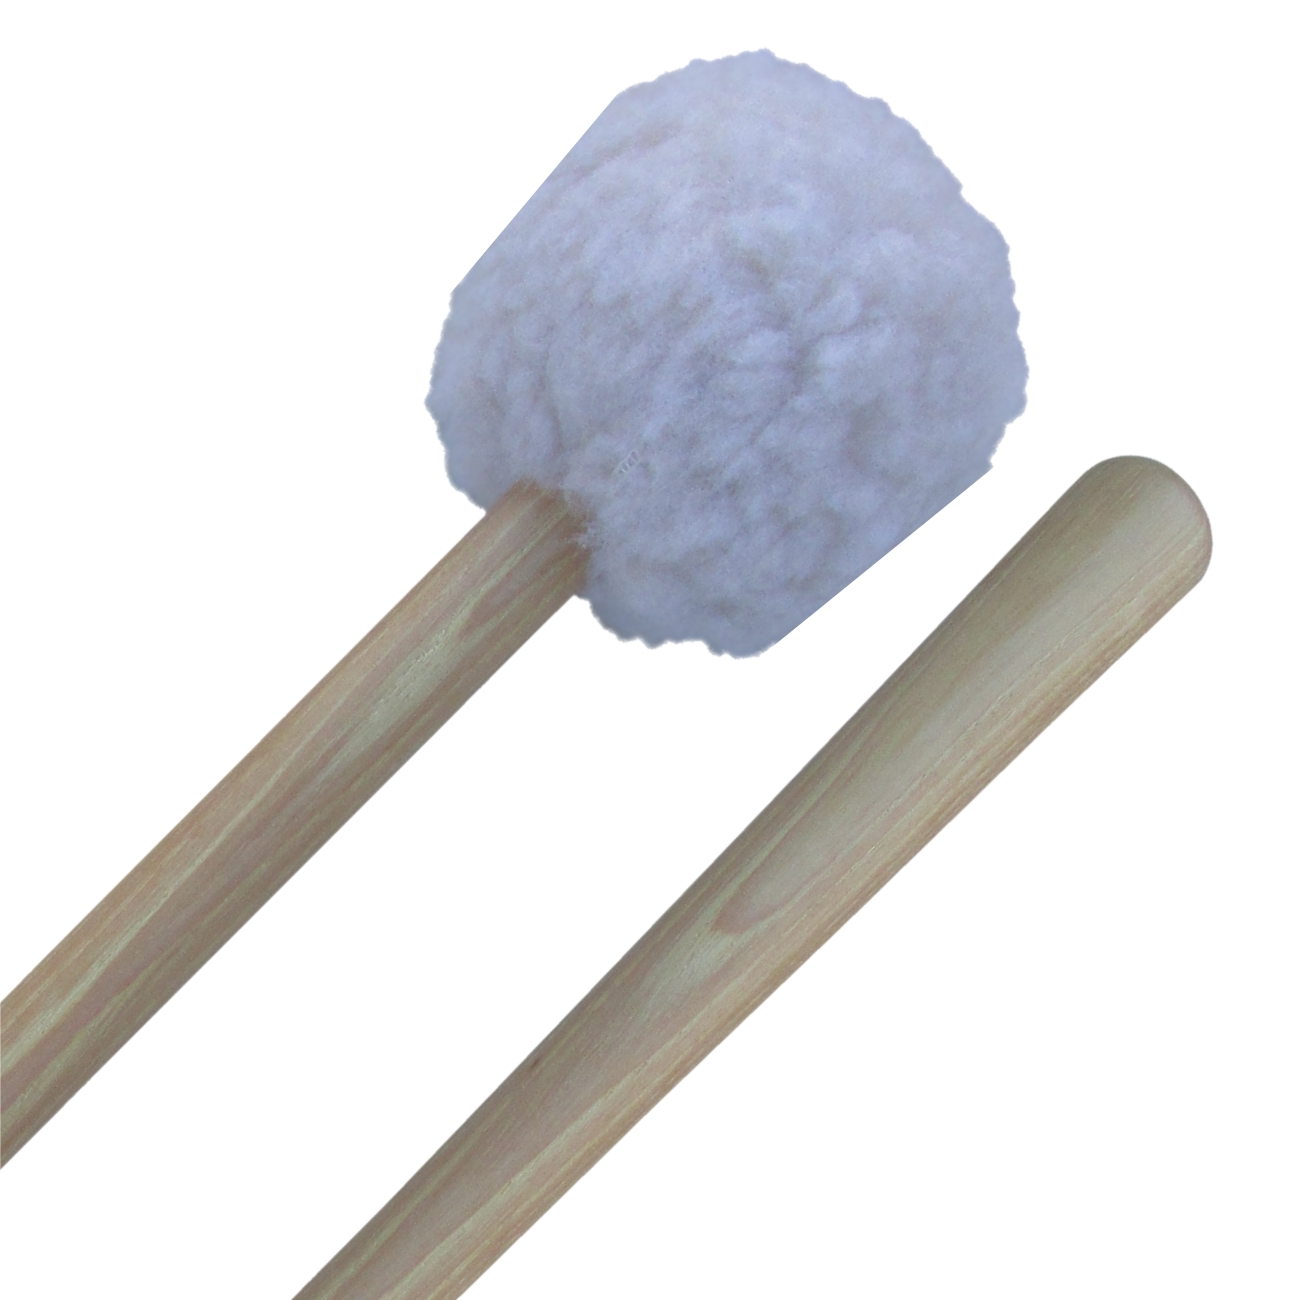 Puffy marching bass drum mallets (XL)